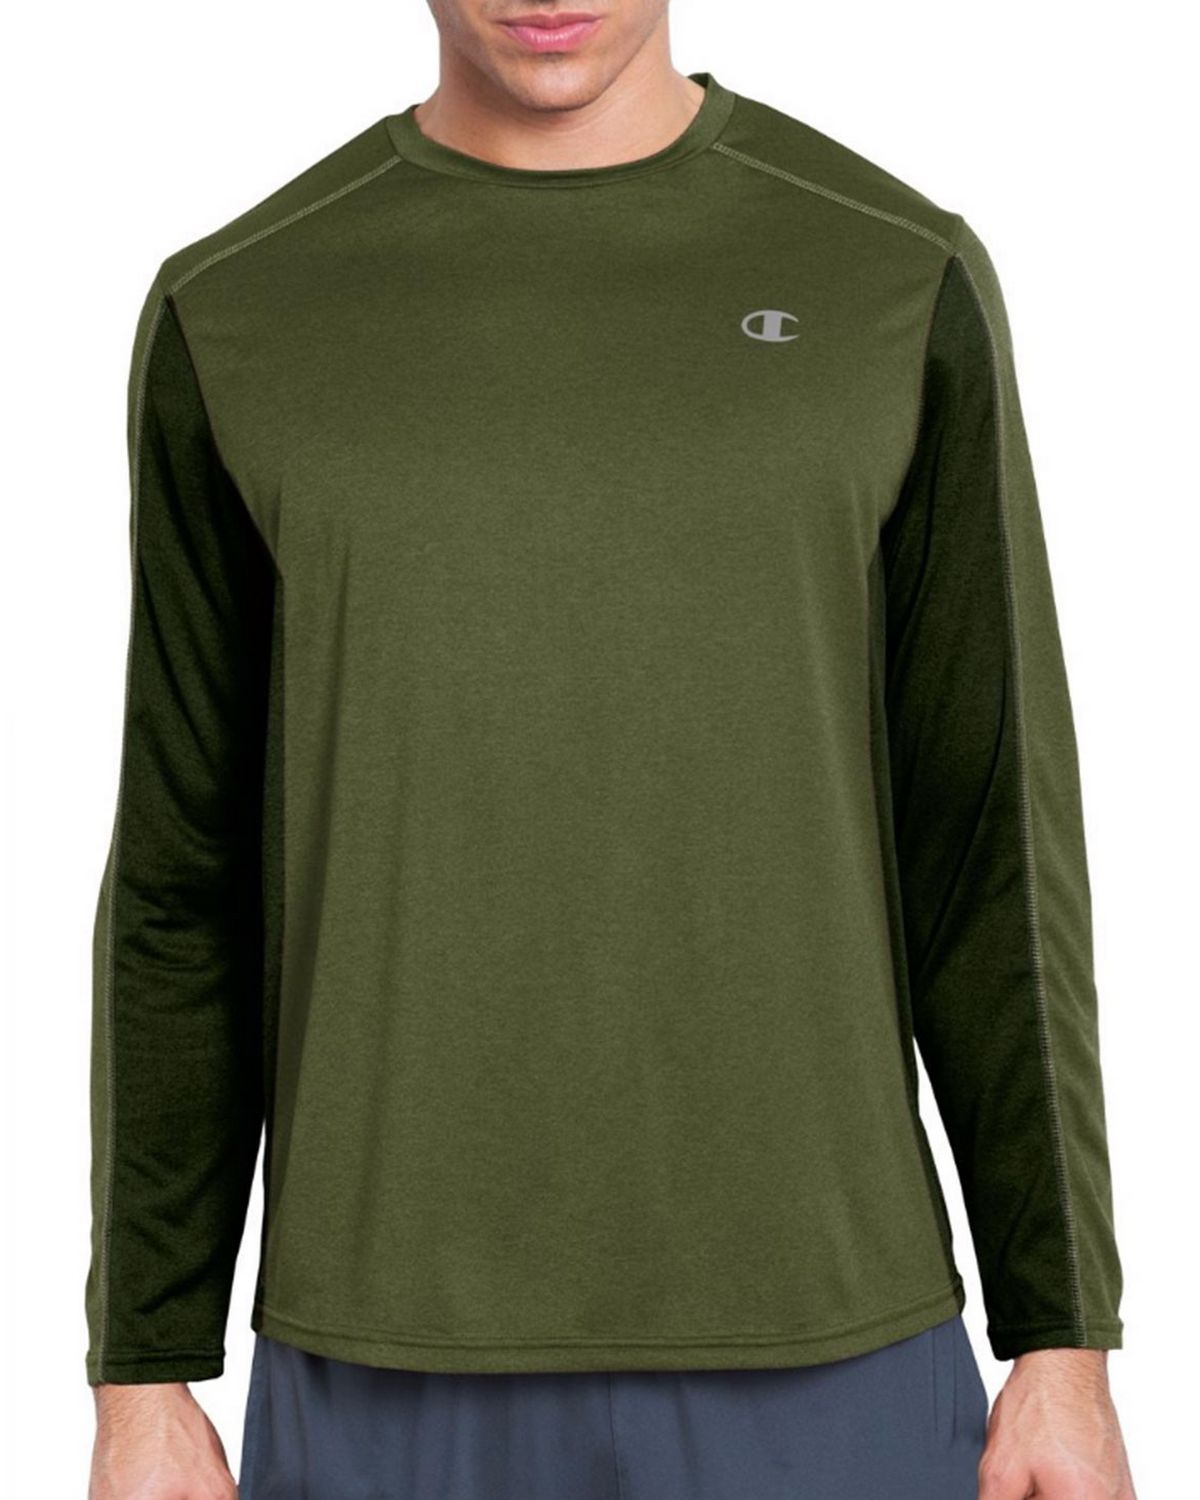 Champion T6607 Vapor PowerTrain Long Sleeve Colorblock Mens Tee - Oxford Grey/Granite Heather - S T6607